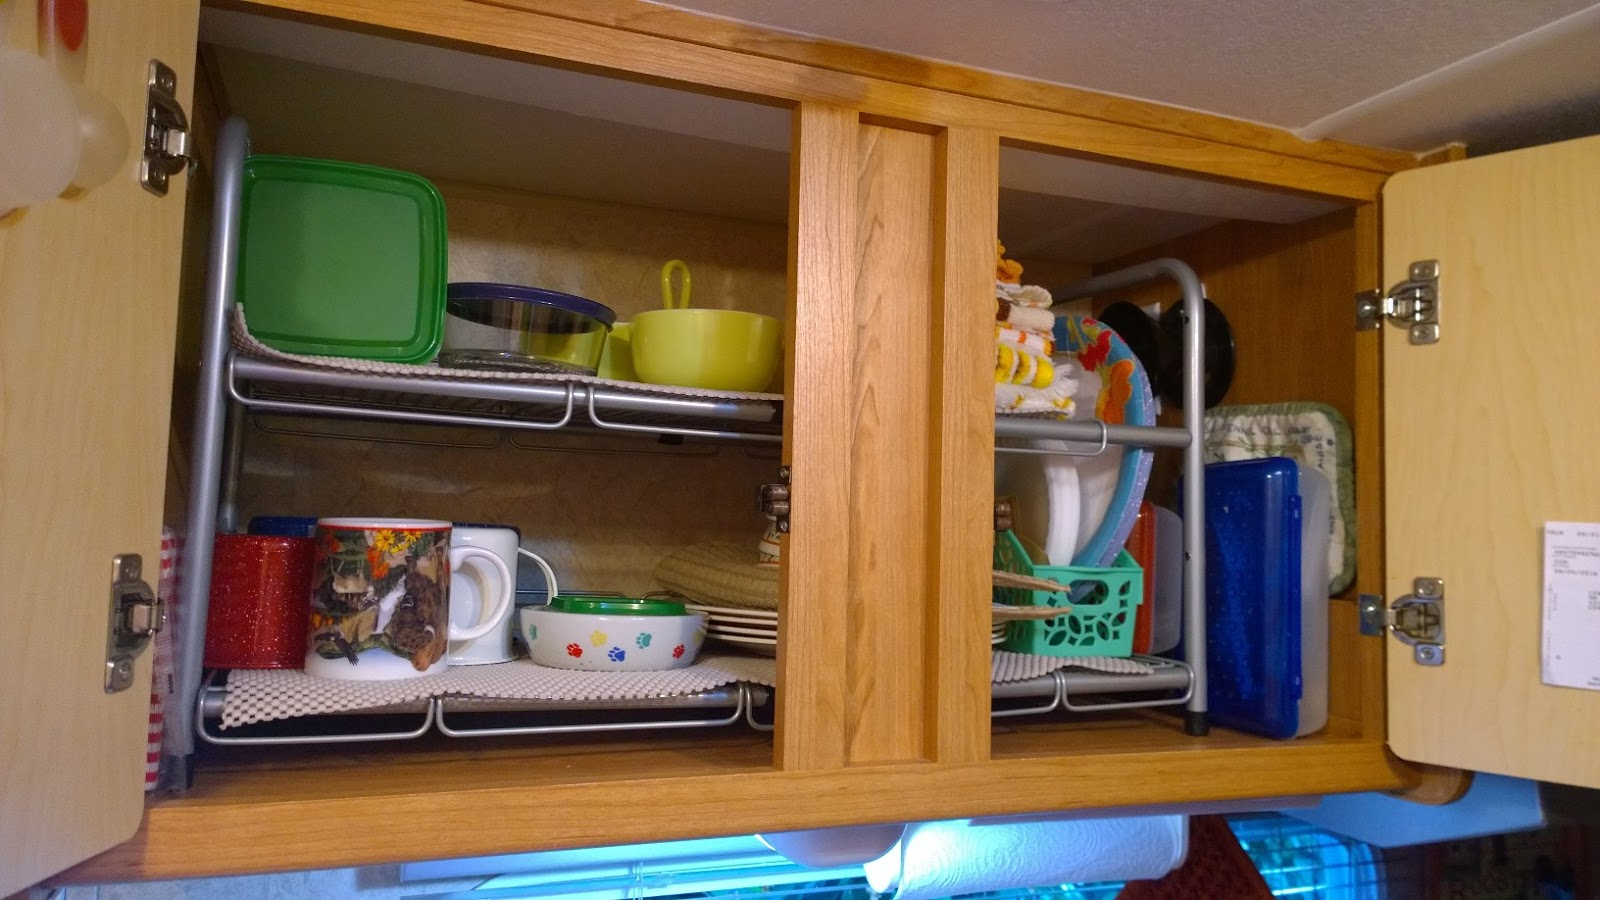 adding shelves to kitchen cabinets how replace countertops sunny simple life a second shelf rv cabinet